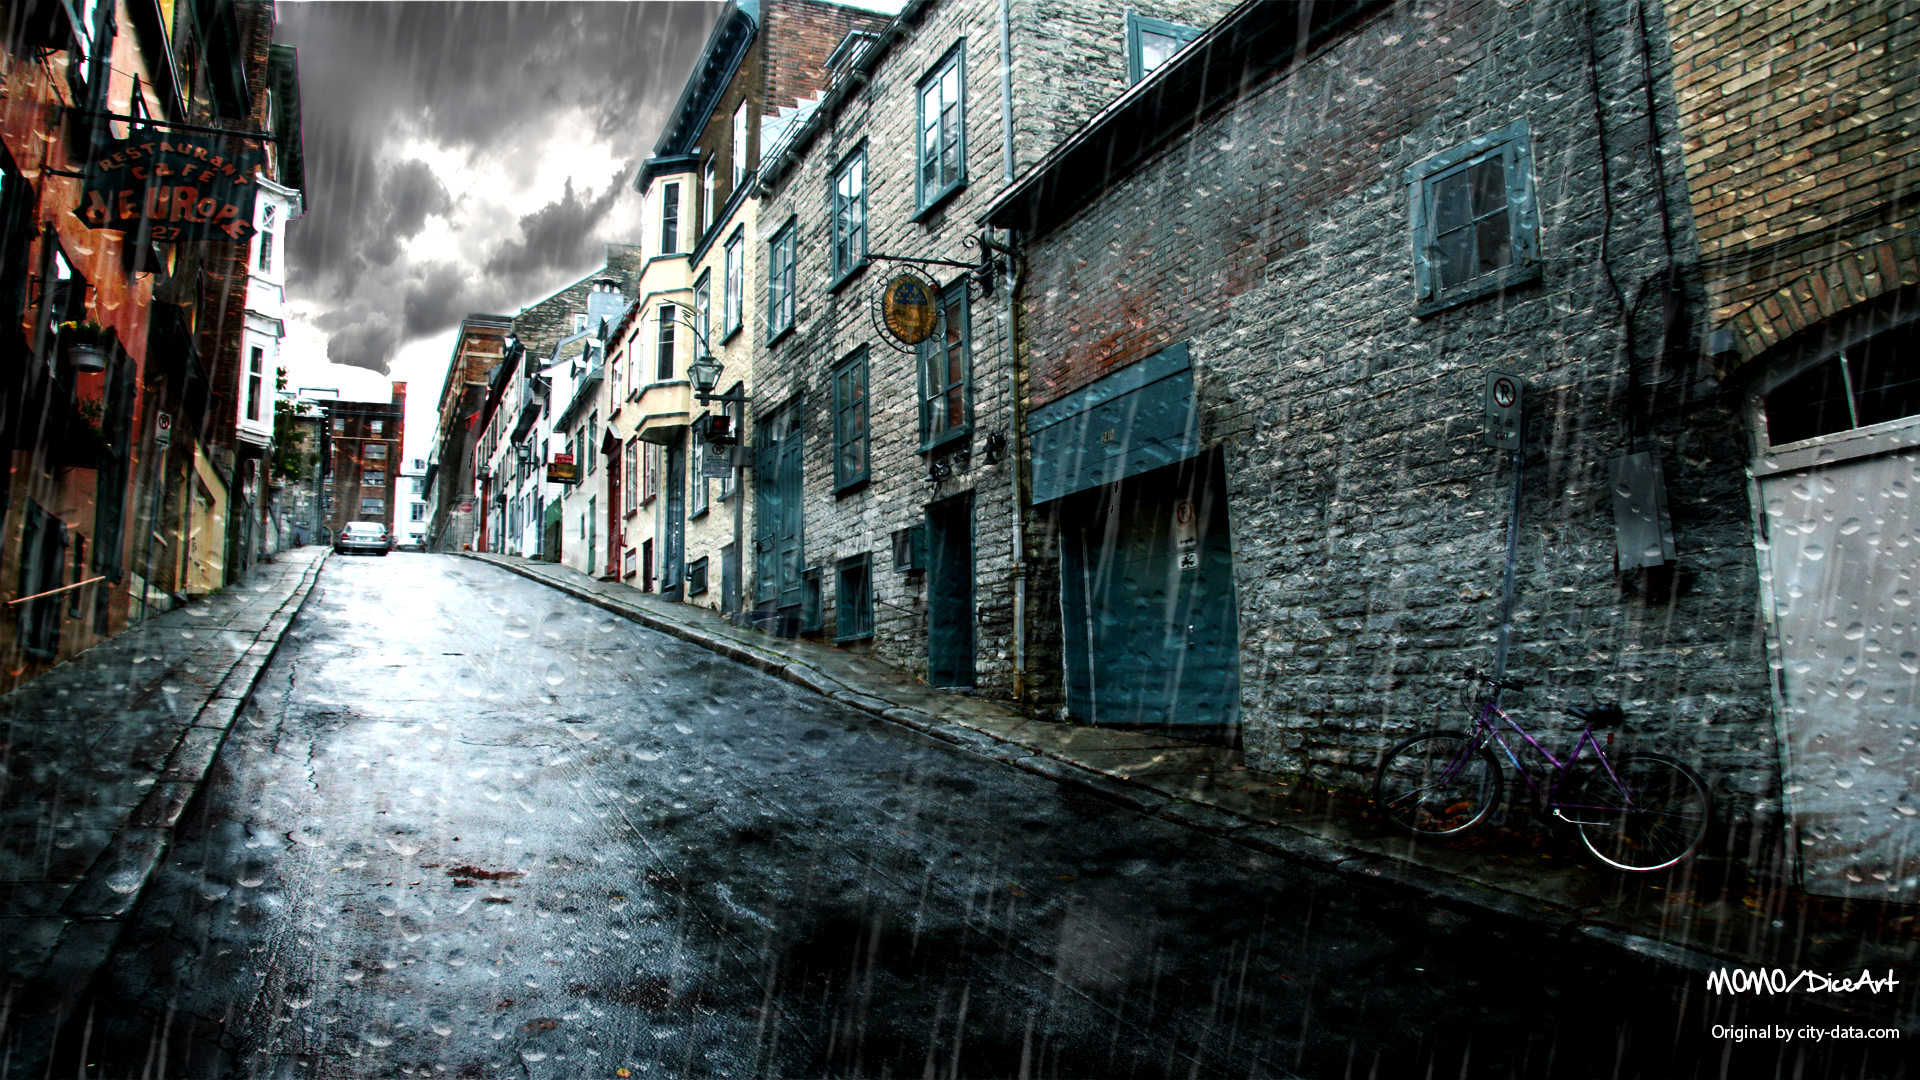 Street Images Hd Rainy Street Hd Wallpaper Background Image